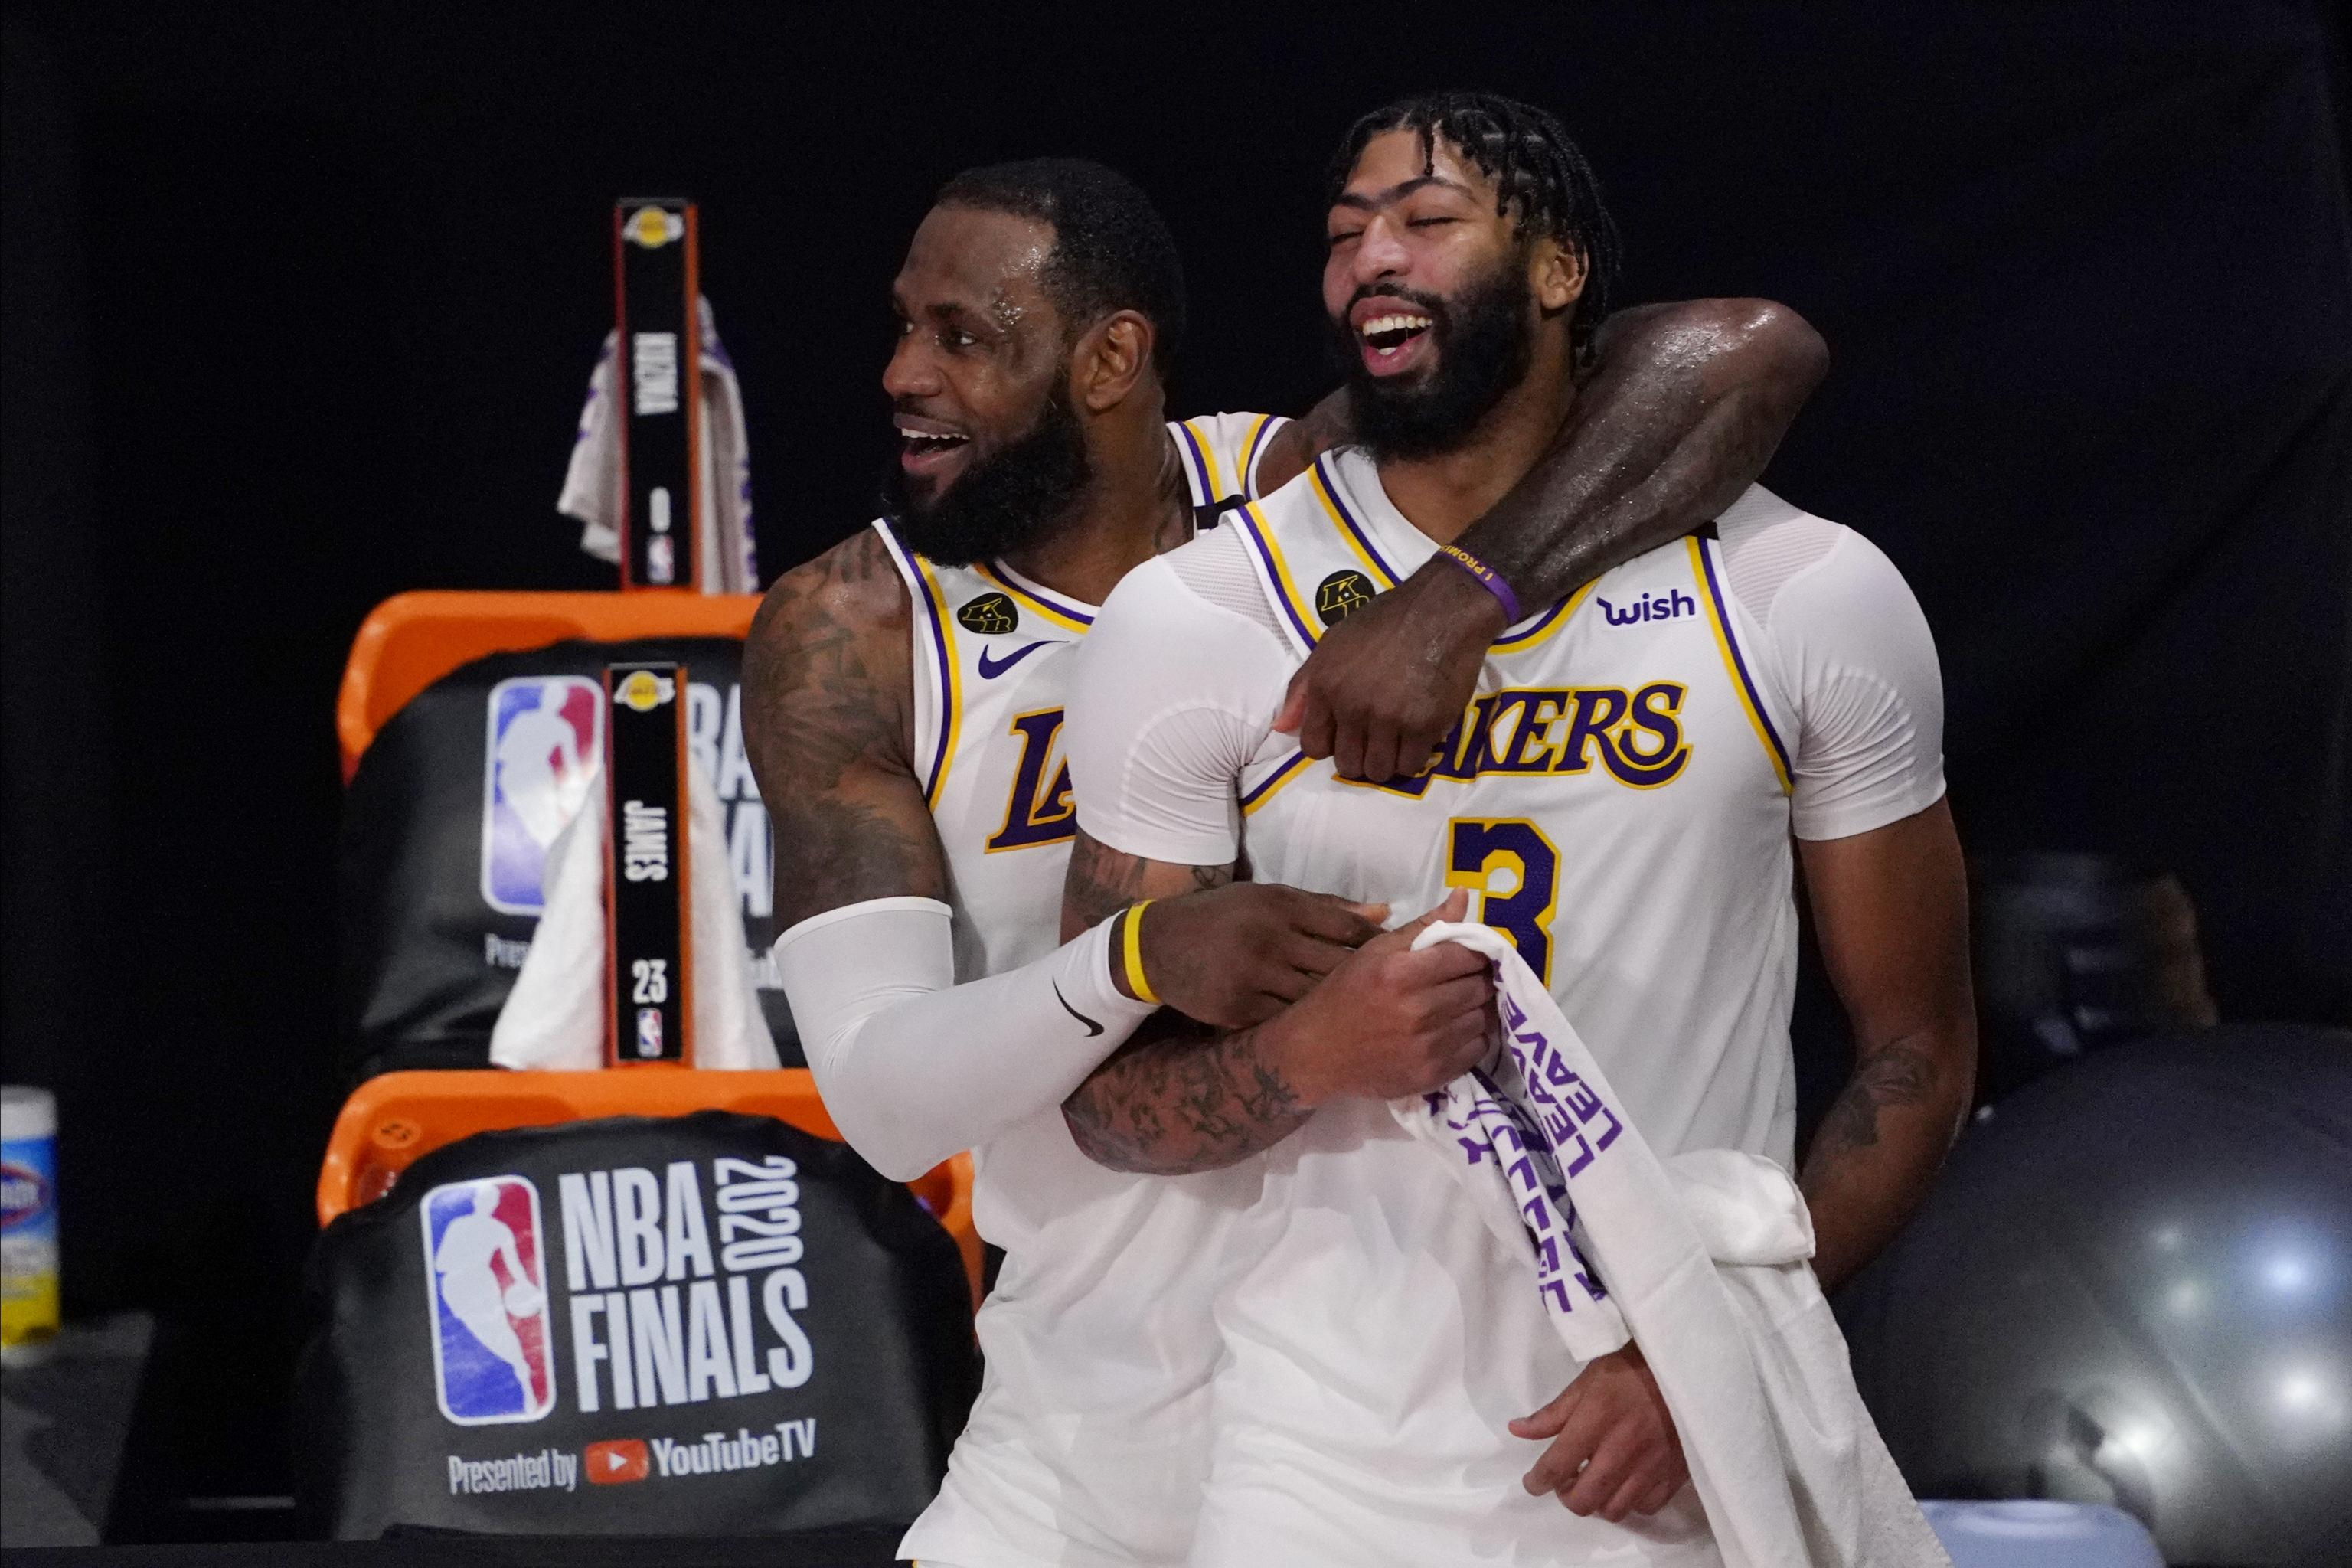 Nba Finals 2020 Lakers Vs Heat Game 6 Box Score Top Performers Reaction Bleacher Report Latest News Videos And Highlights